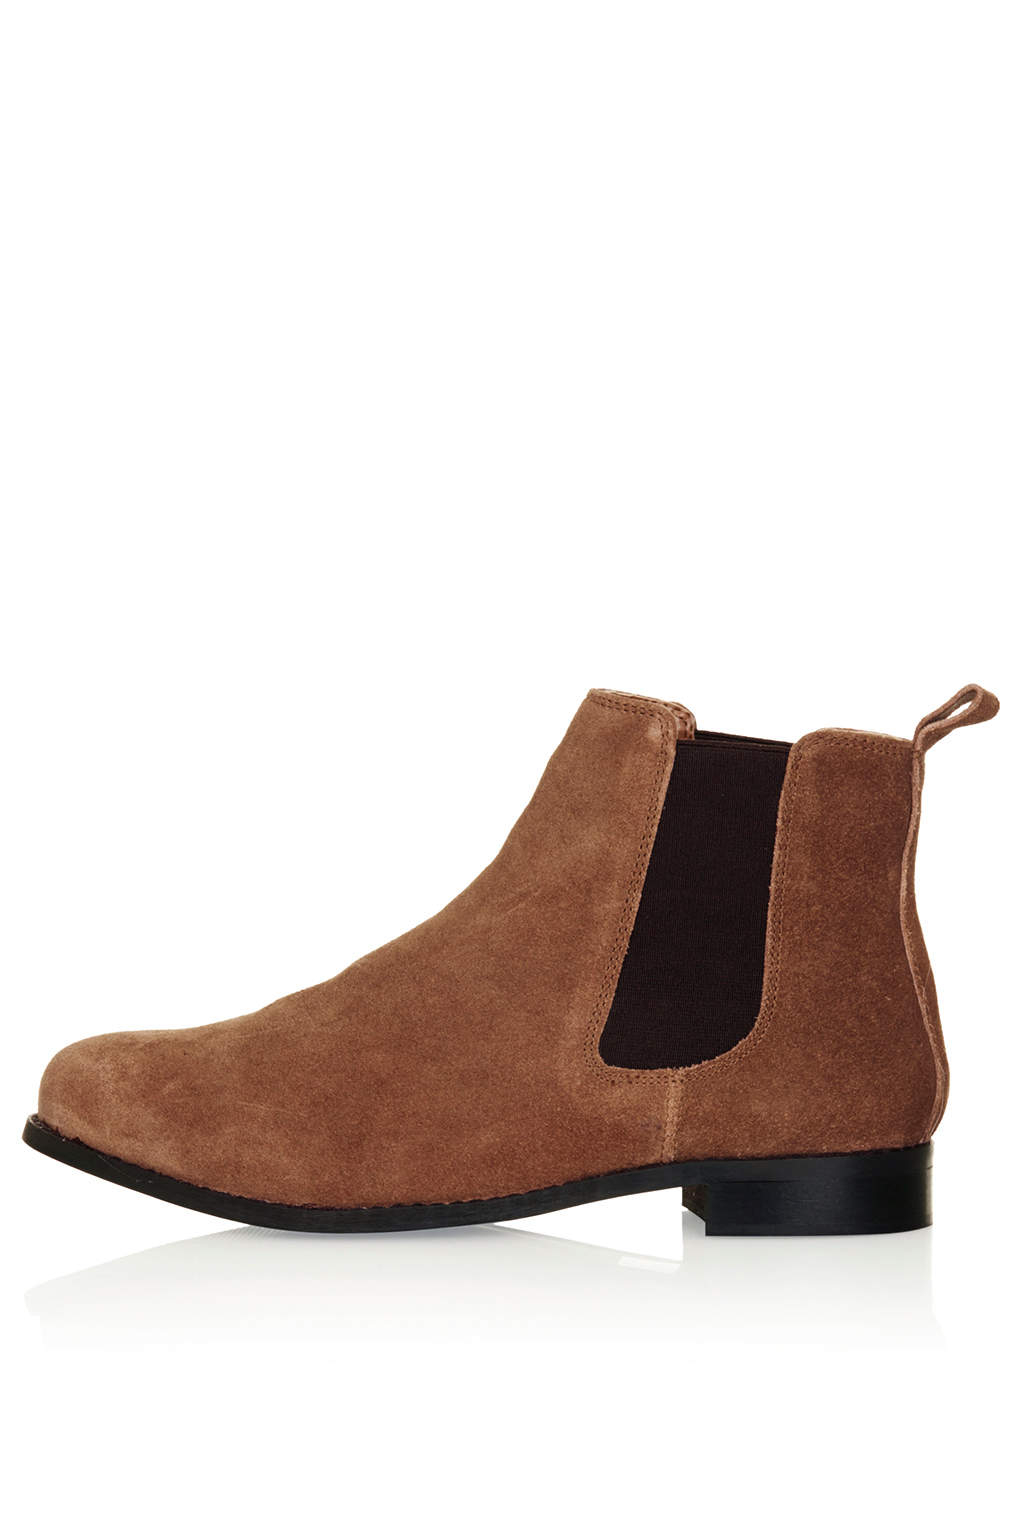 Lyst - TOPSHOP Month Suede Chelsea Boots in Brown 877742f43458